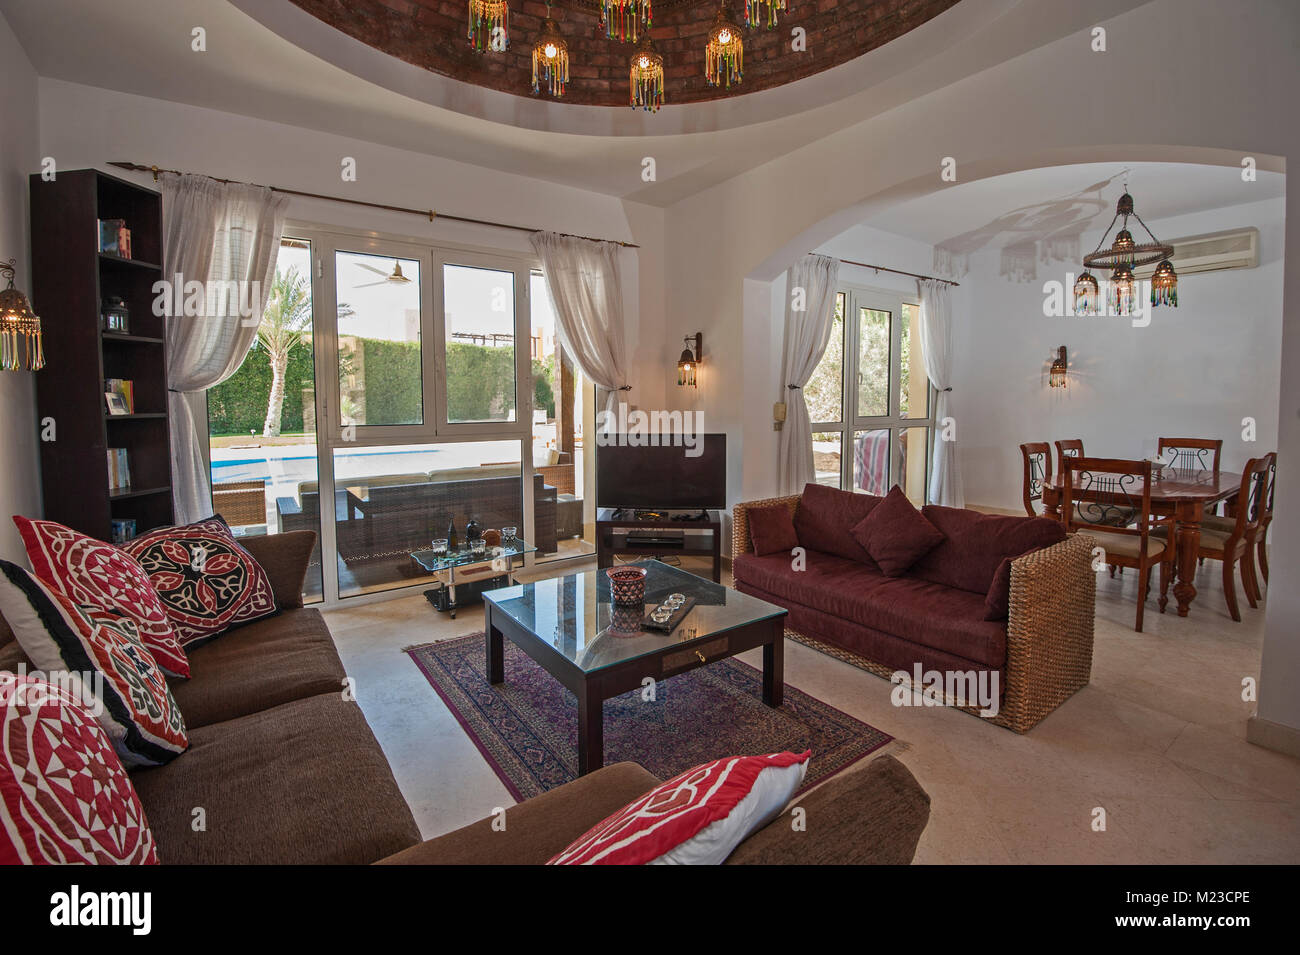 Living room lounge area in luxury villa show home showing interior ...